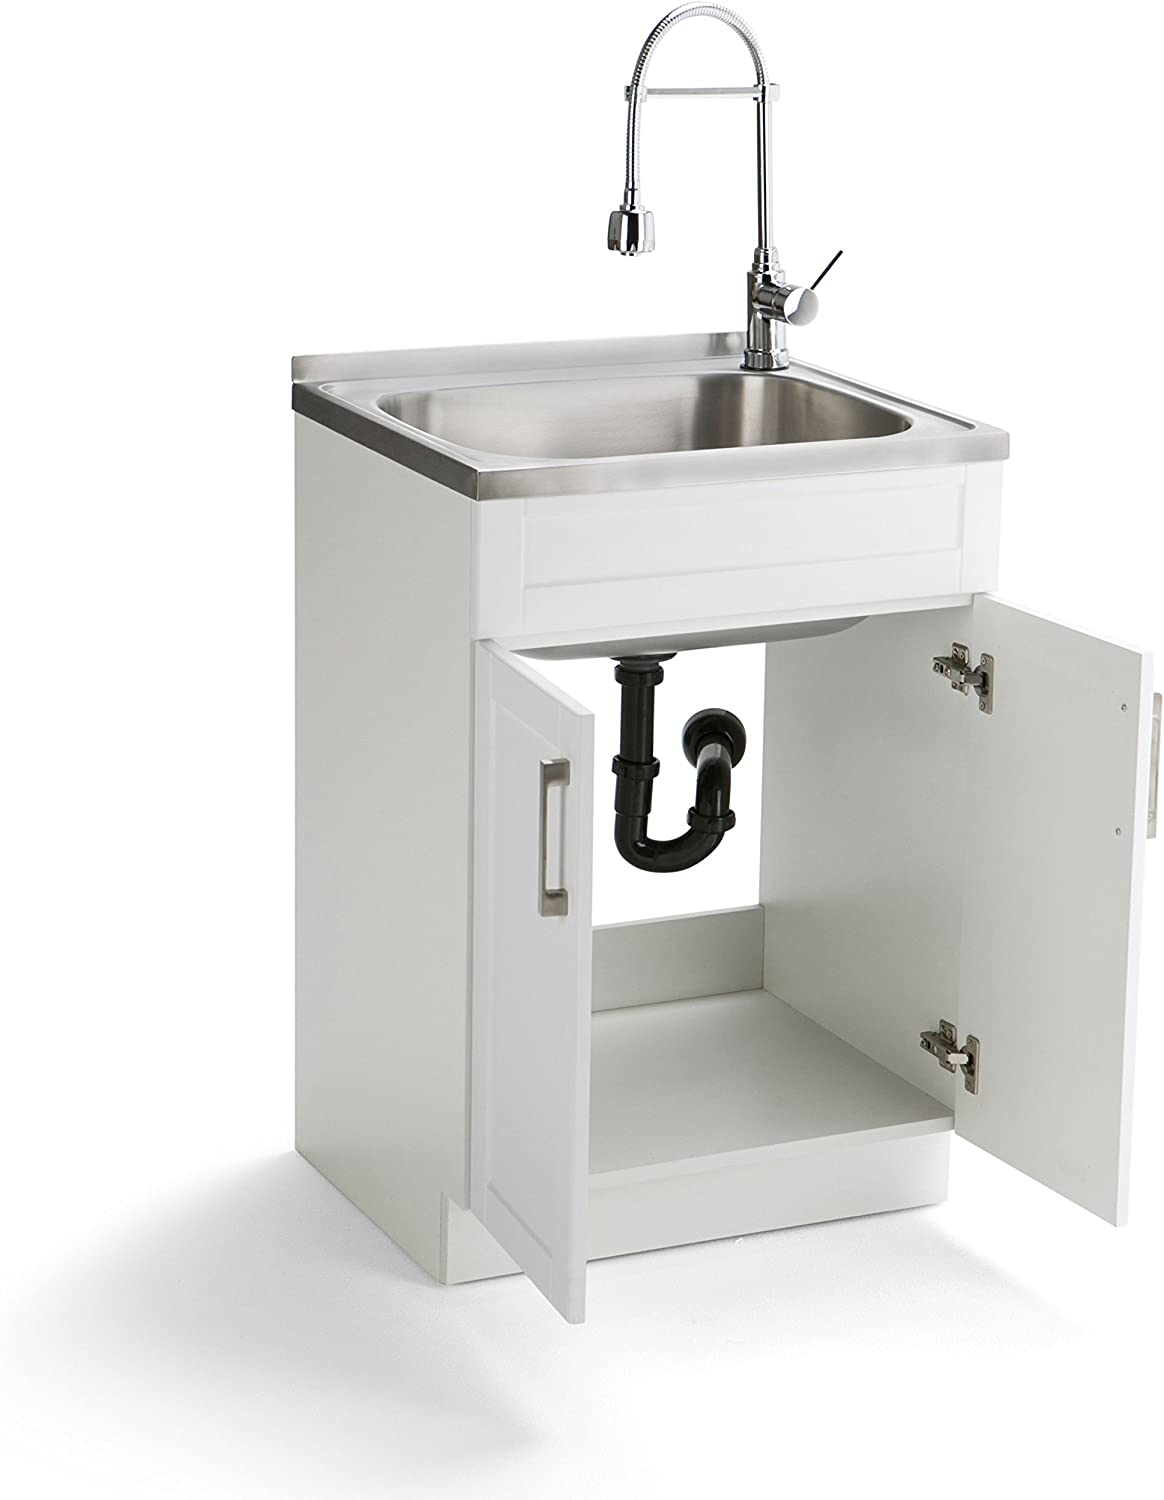 Simpli Home AXCLDYSS-24 Hennessy Contemporary 24 inch Laundry Cabinet with Faucet and Stainless Steel Sink Ltd.